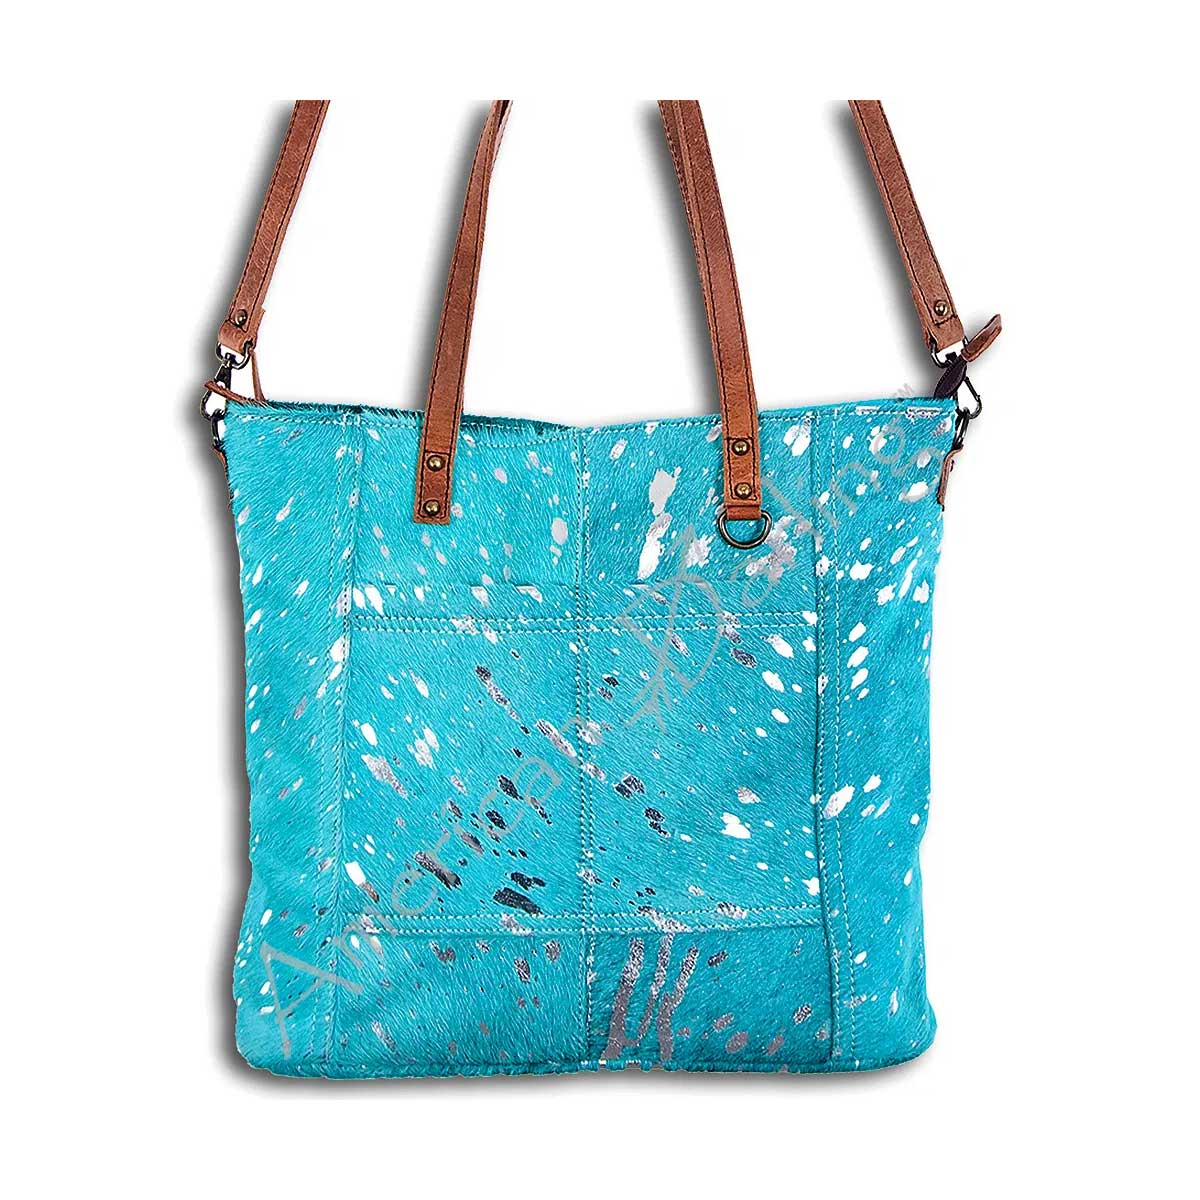 American Darling Large Handbag - Teal